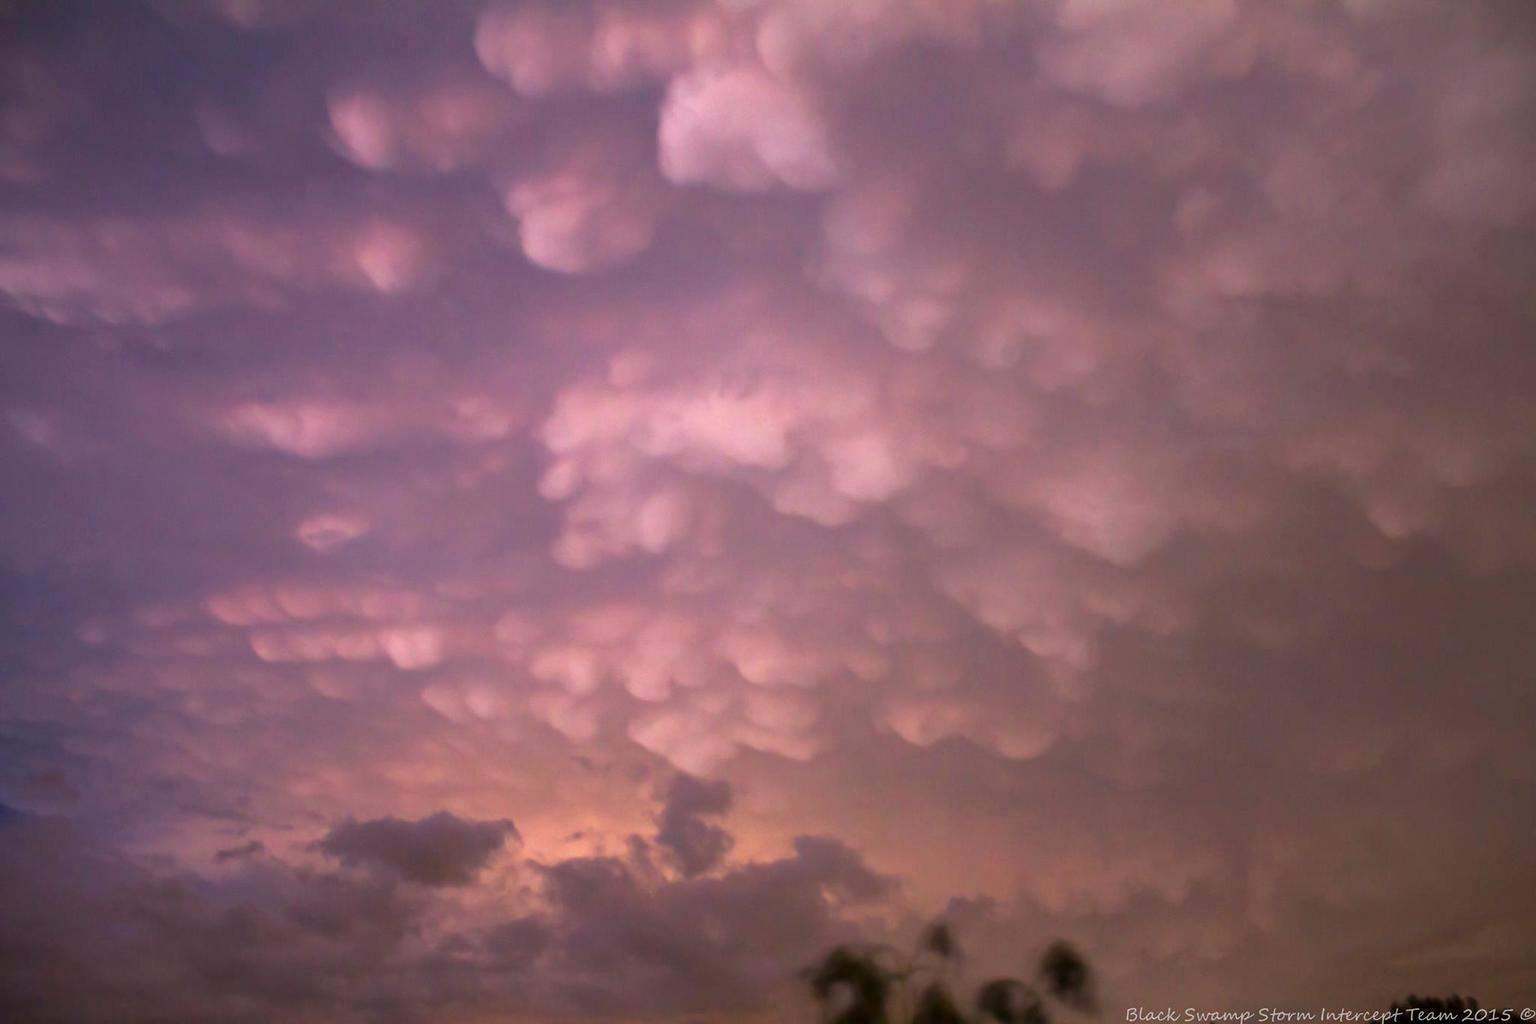 Impressive mammatus show as some off and on severe warned storms passed just south of the area. August 23, Clyde, Ohio.